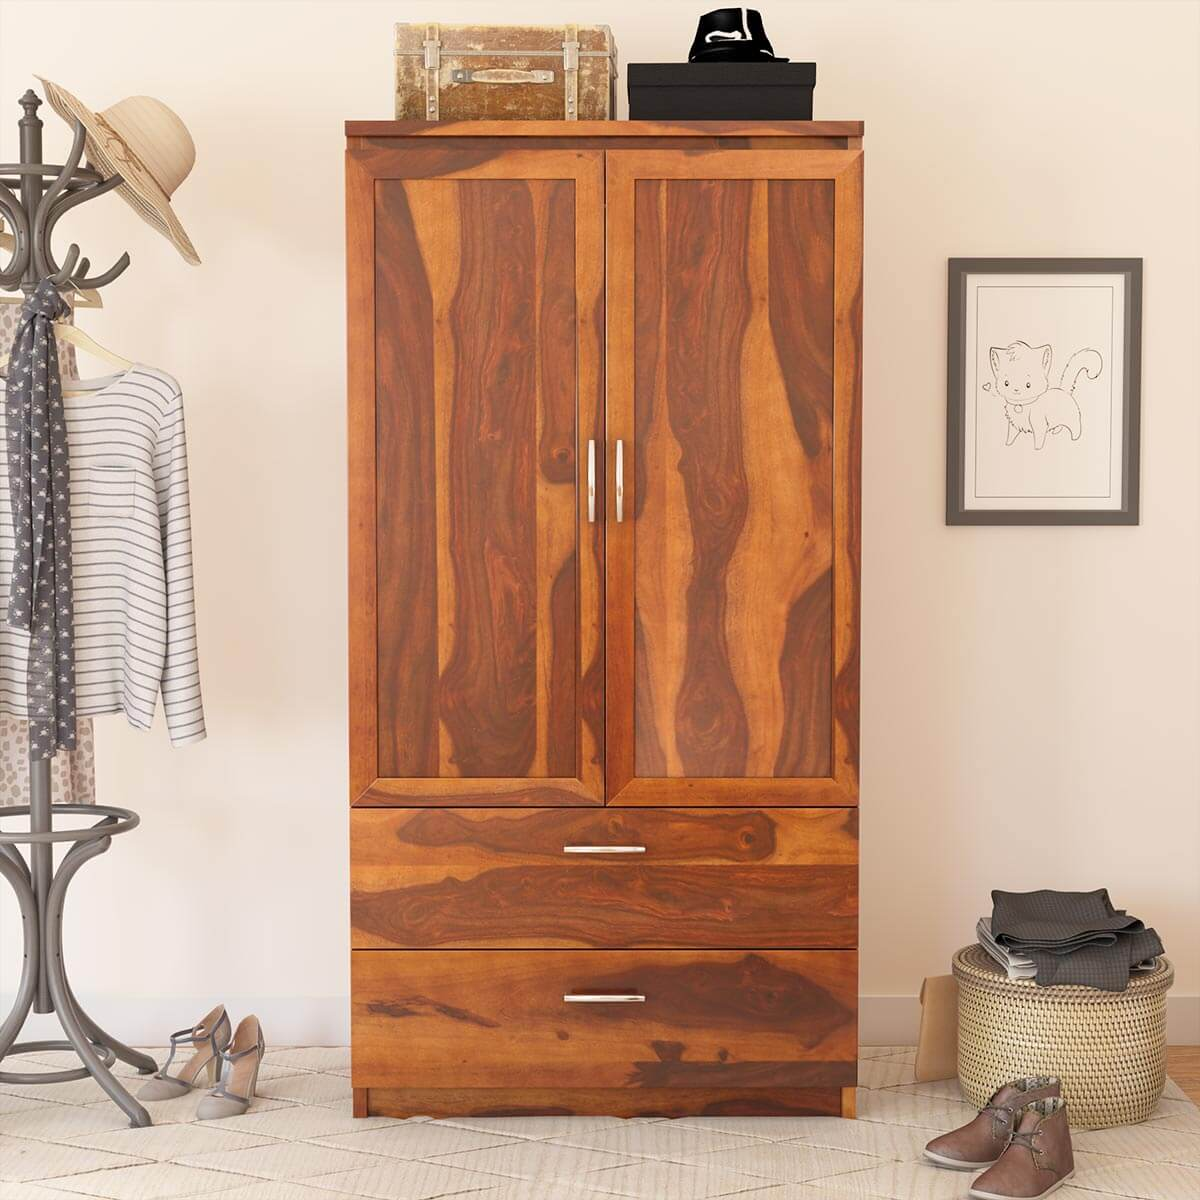 Caspian Rustic Solid Wood Wardrobe Clothing Armoire With Shelves